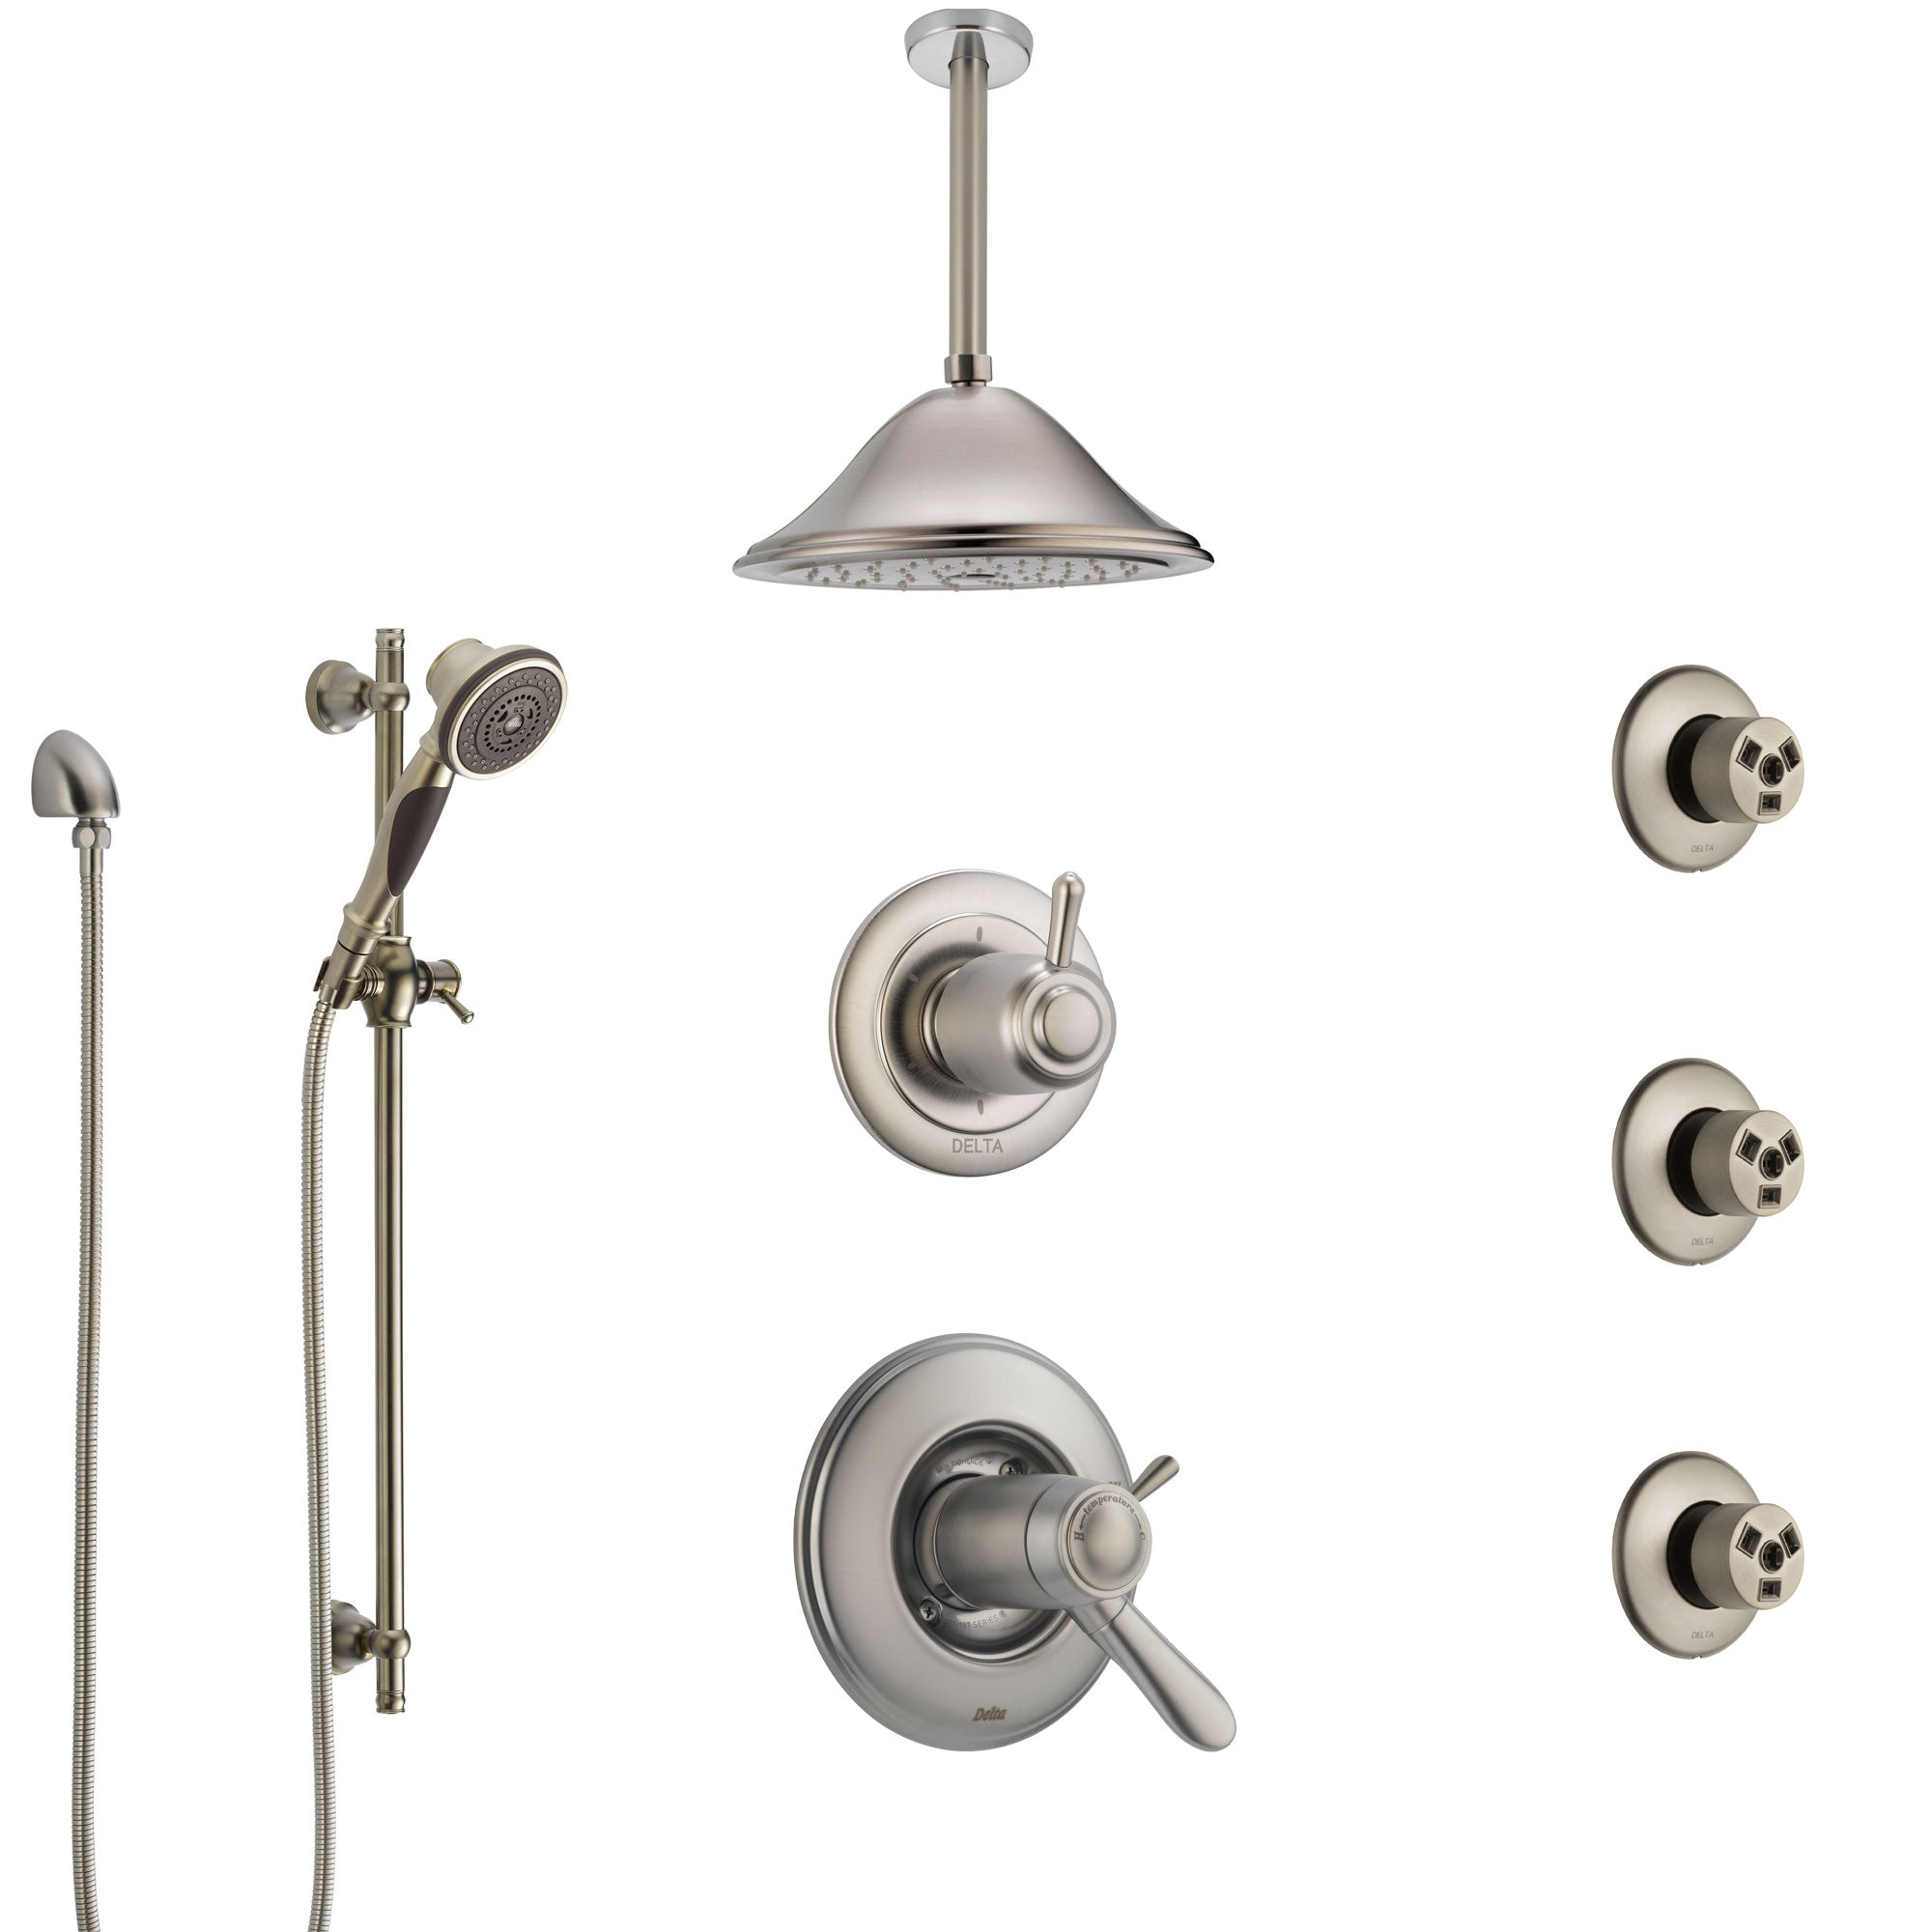 Delta Lahara Dual Thermostatic Control Stainless Steel Finish Shower System, Diverter, Ceiling Showerhead, 3 Body Sprays, and Hand Shower SS17T382SS7